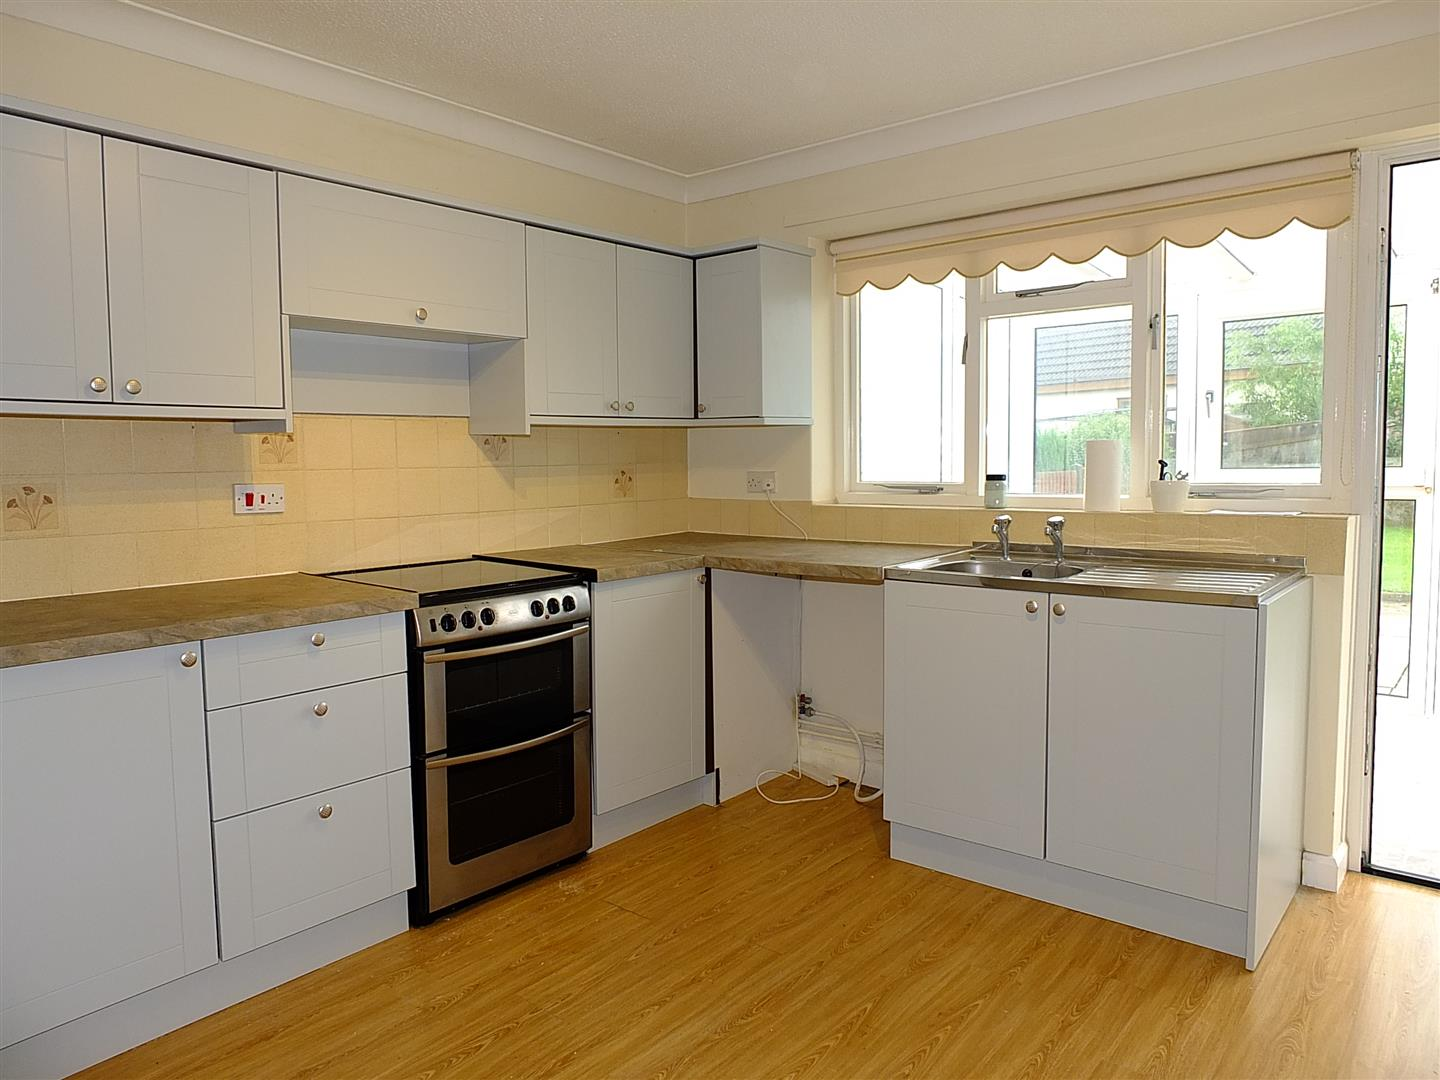 3 bed detached bungalow to rent in Long Sutton Spalding, PE12 9LY  - Property Image 6